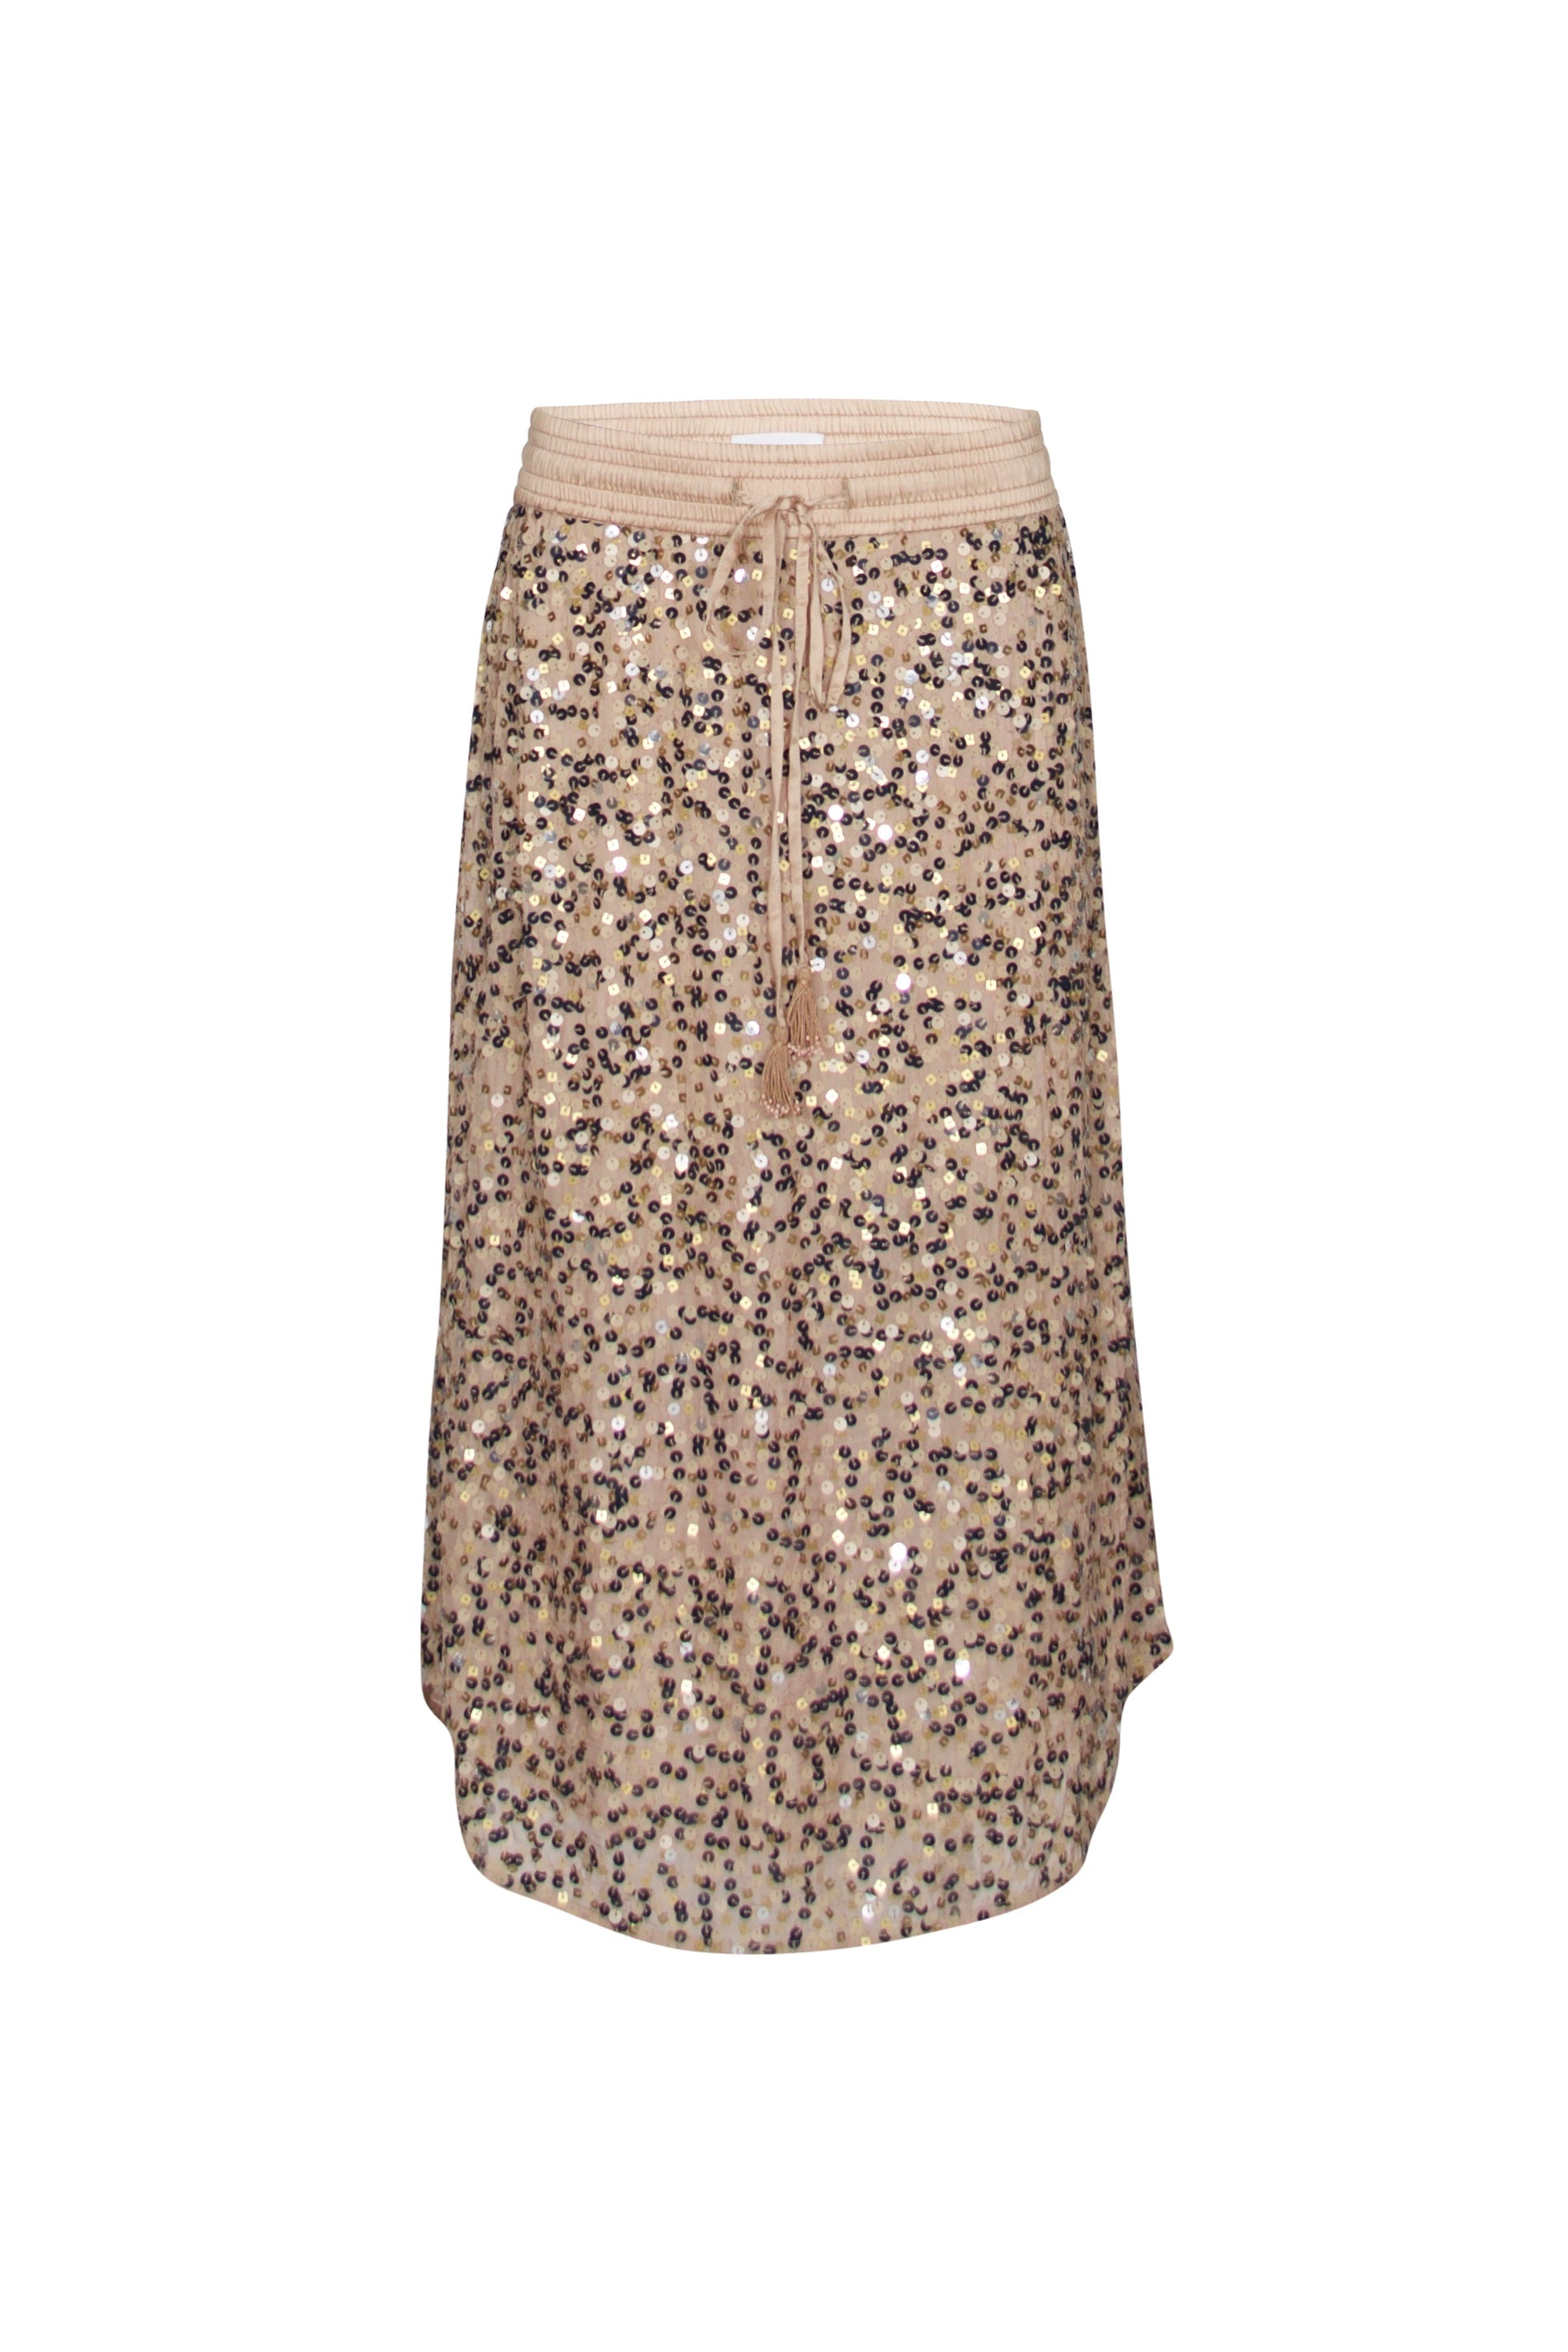 All That Glitters Skirt